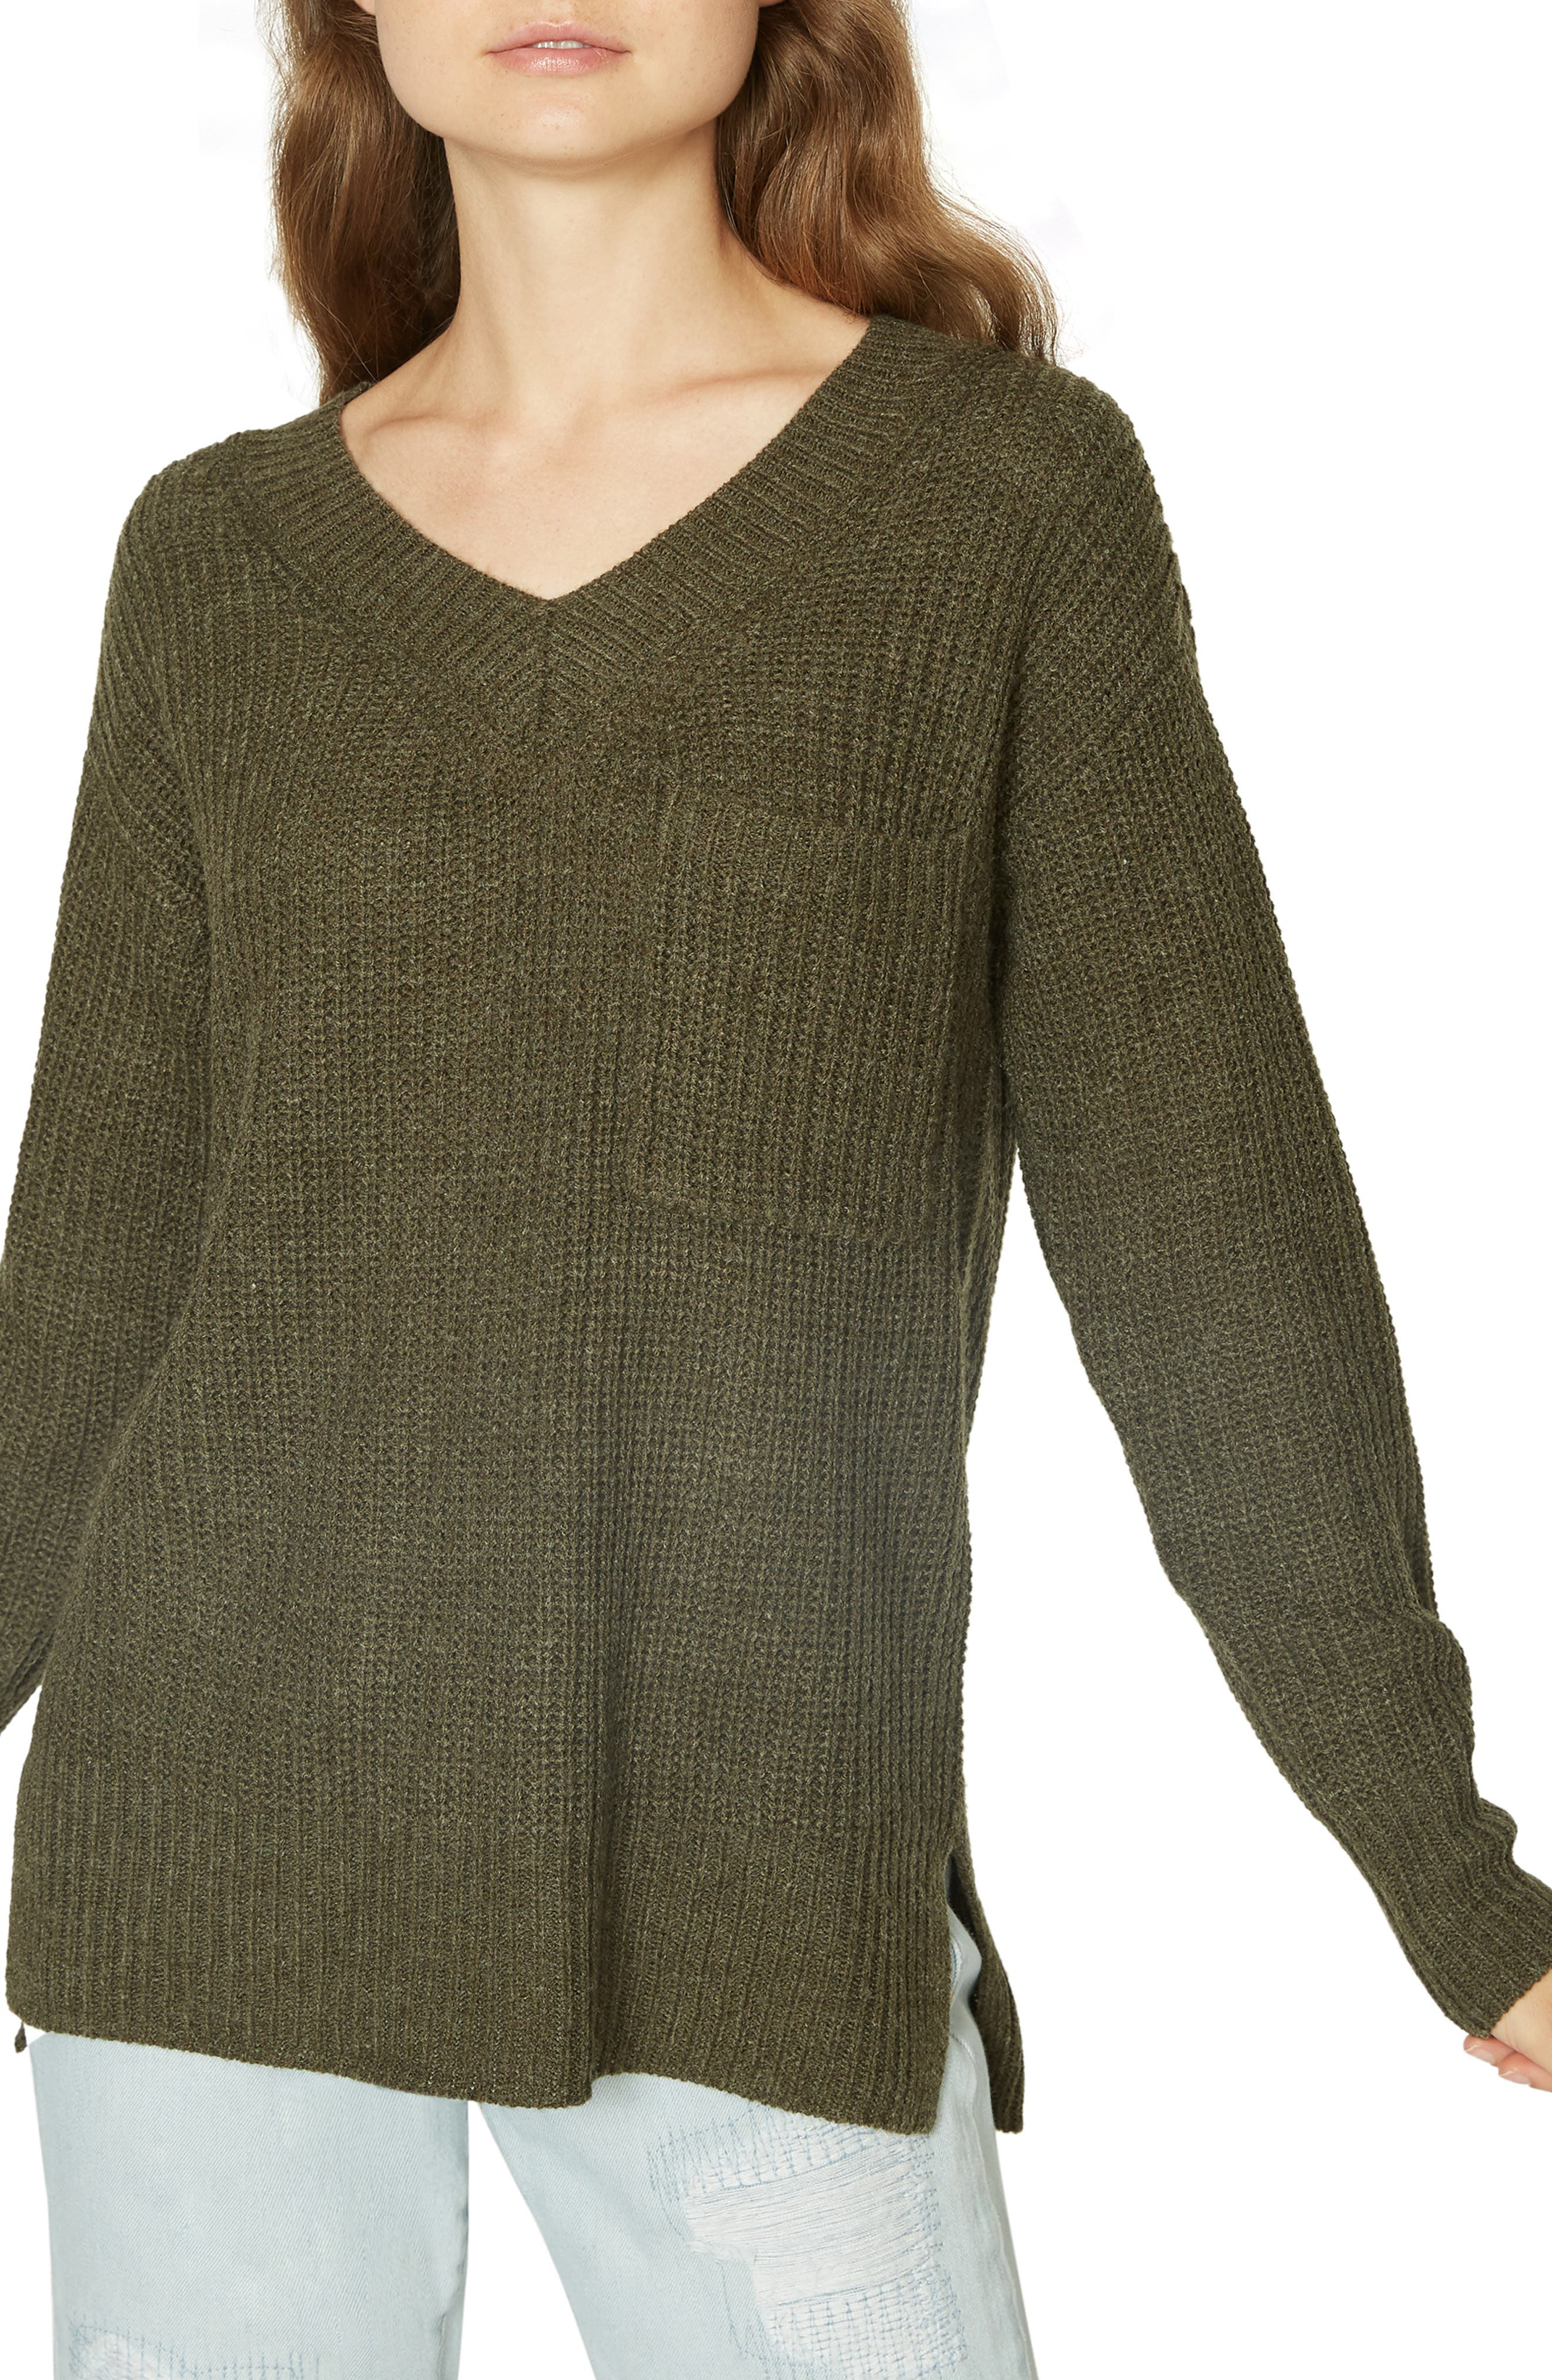 Amare Shaker Sweater,                             Main thumbnail 1, color,                             HEATHER PROSPERITY GREEN